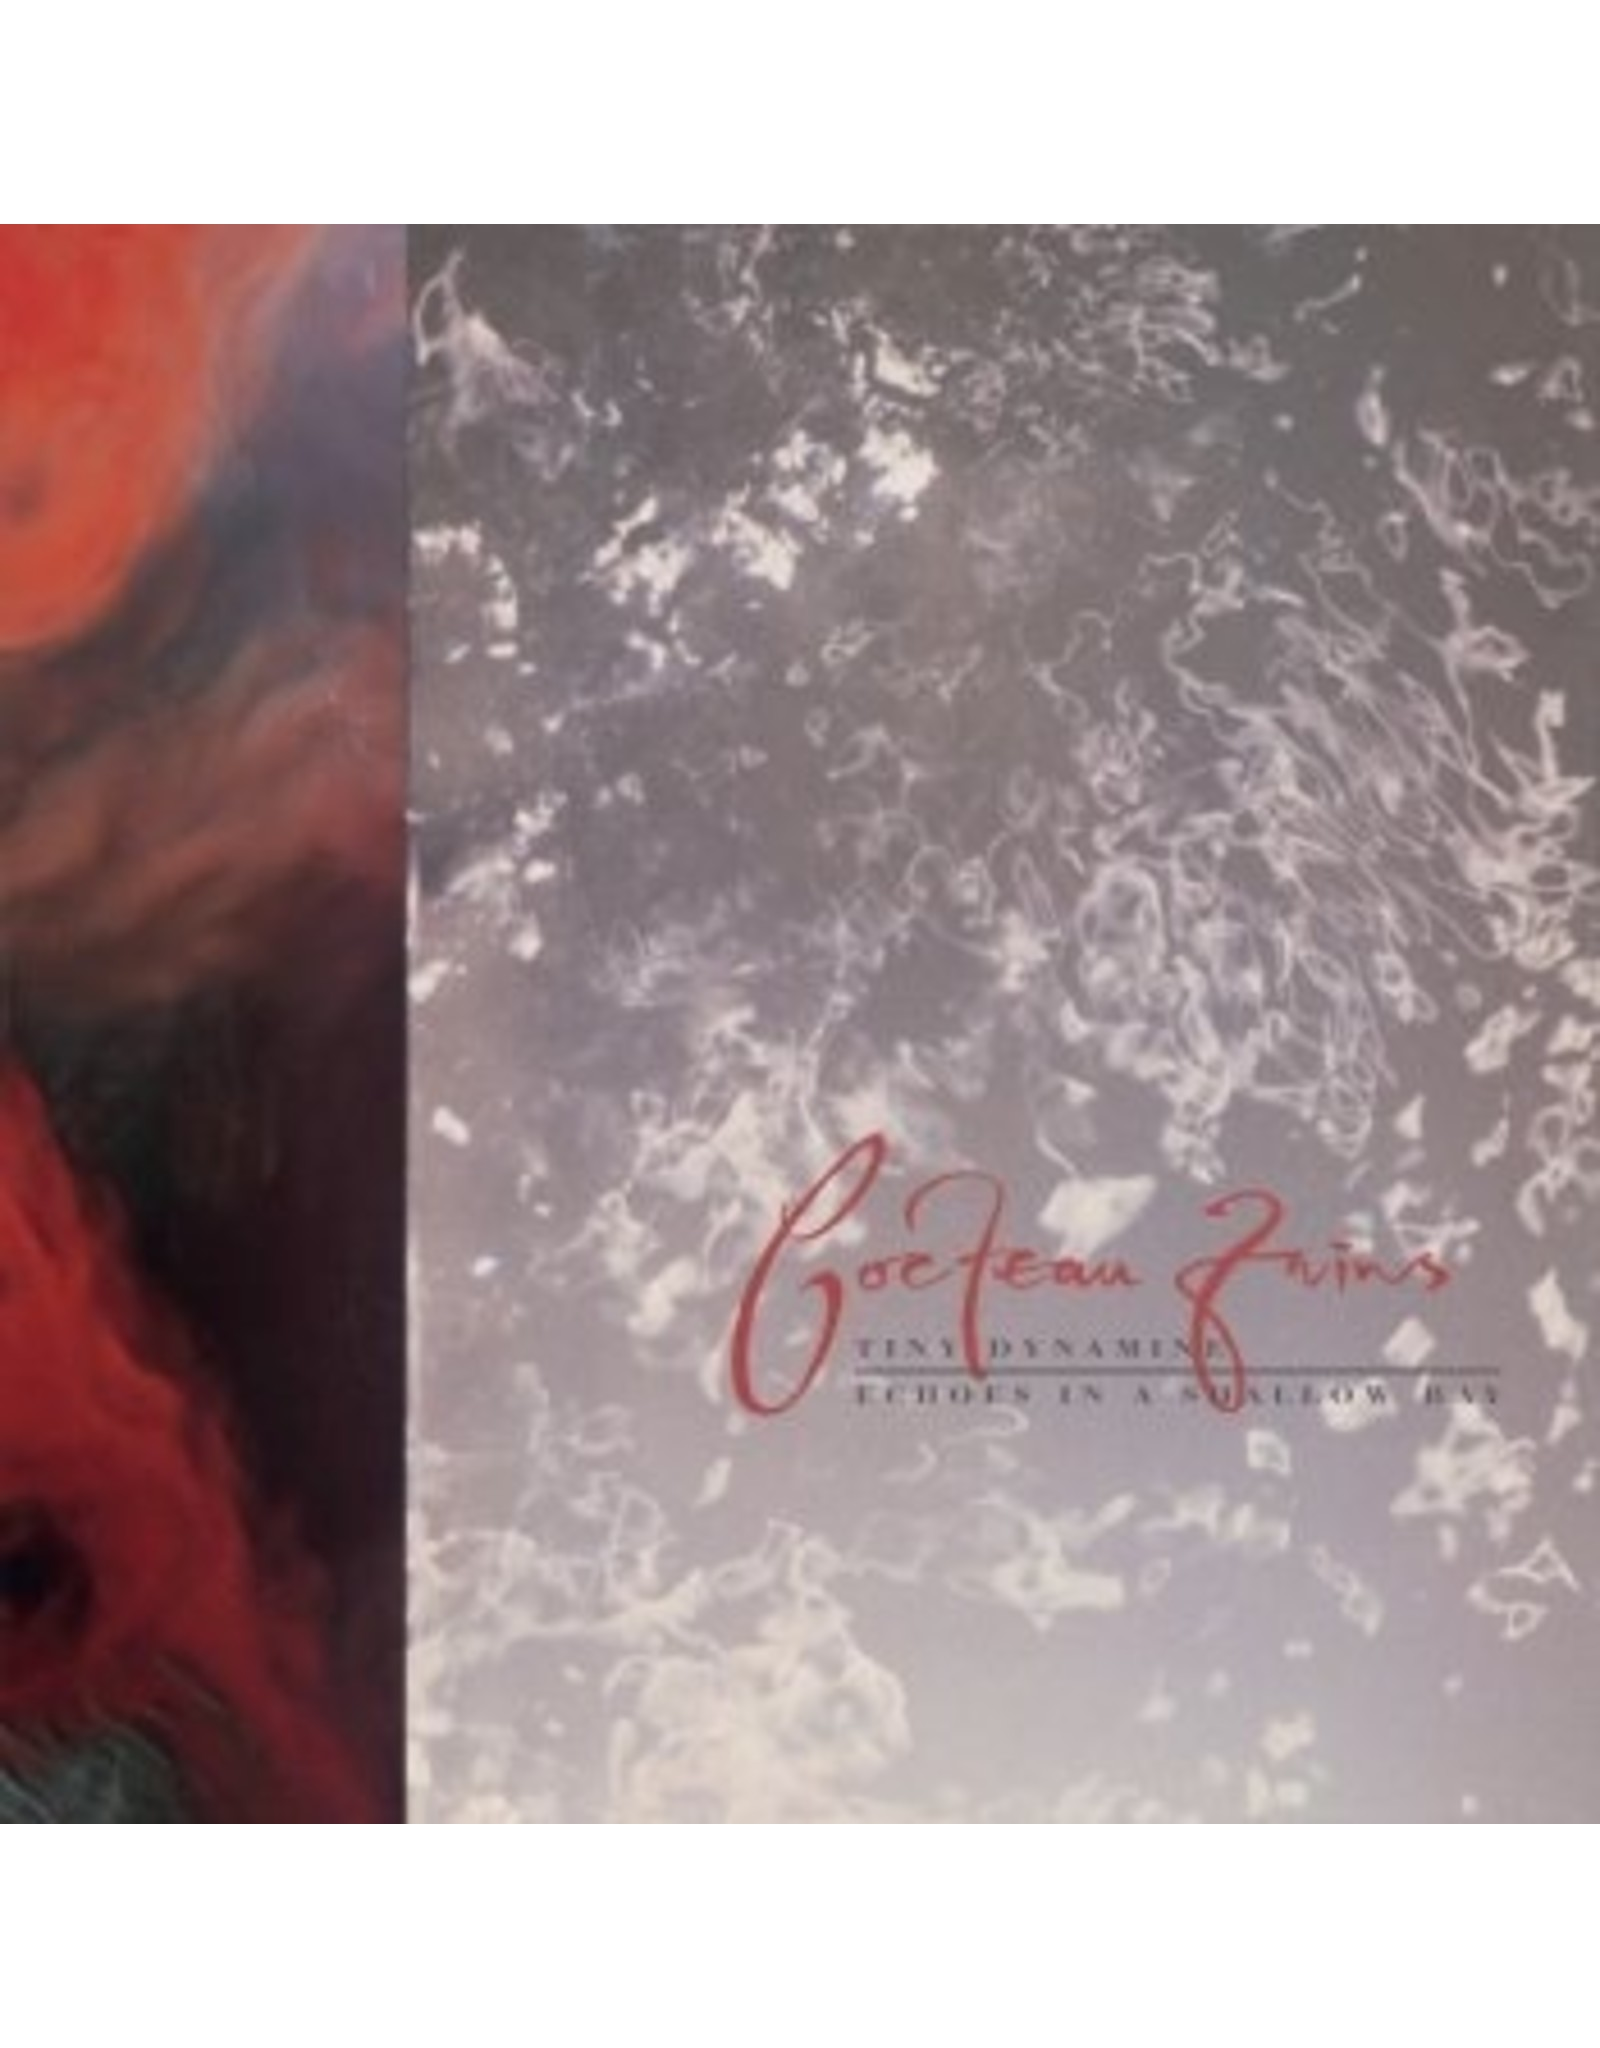 New Vinyl Cocteau Twins - Tiny Dynamite & Echoes In A Shallow Bay LP